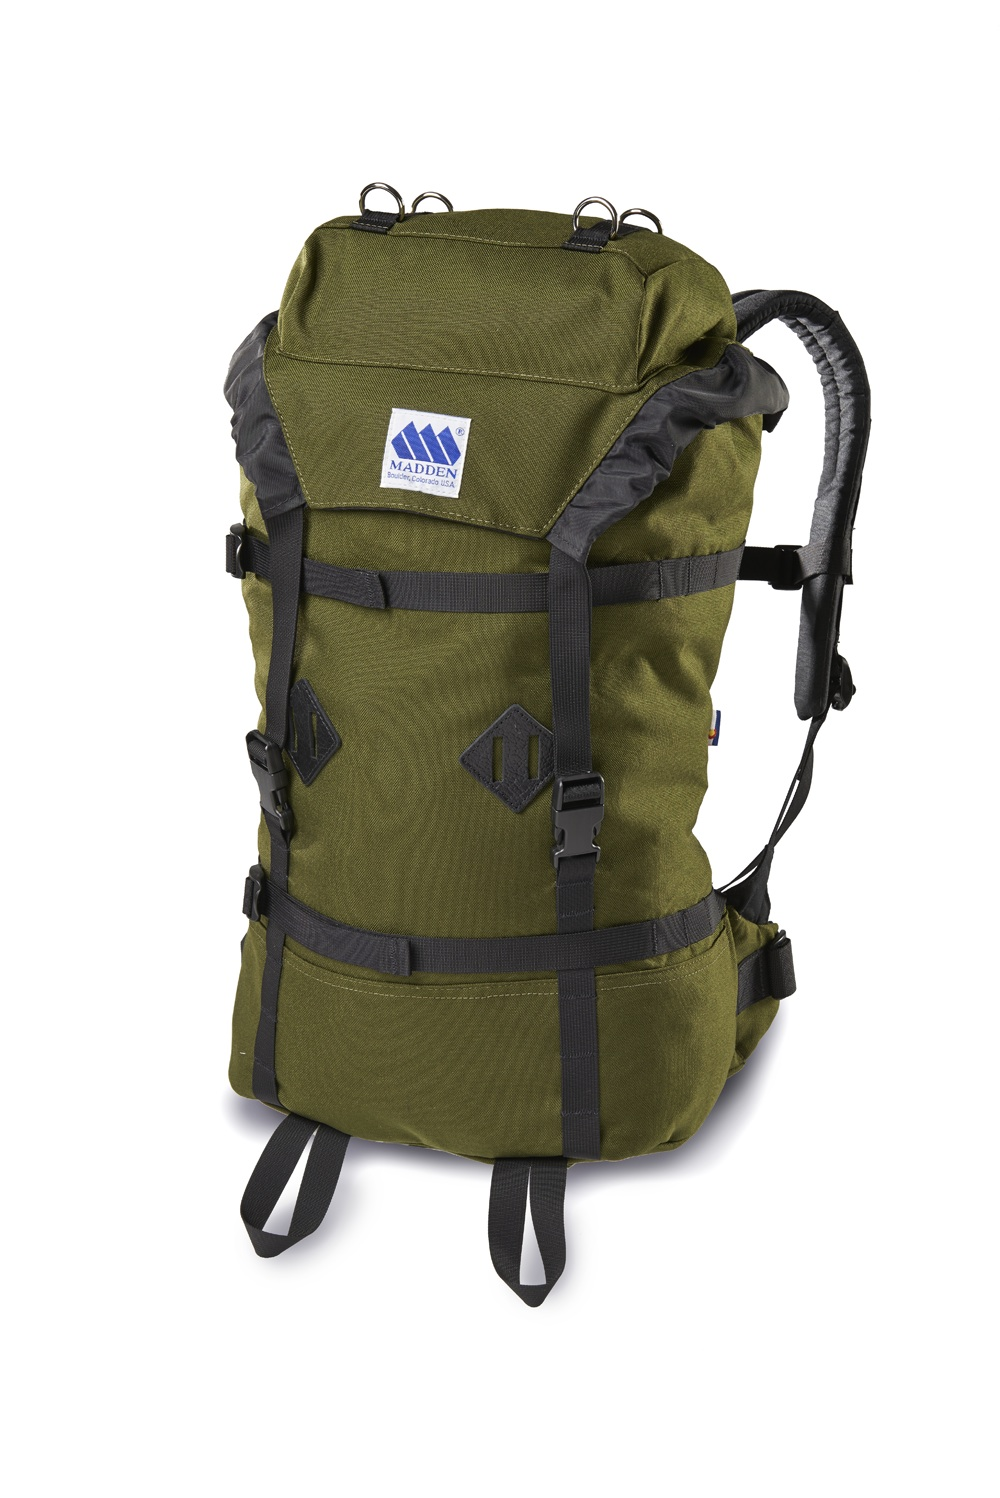 Penguin: Contoured, top-loading soft pack.  For light mountaineering.